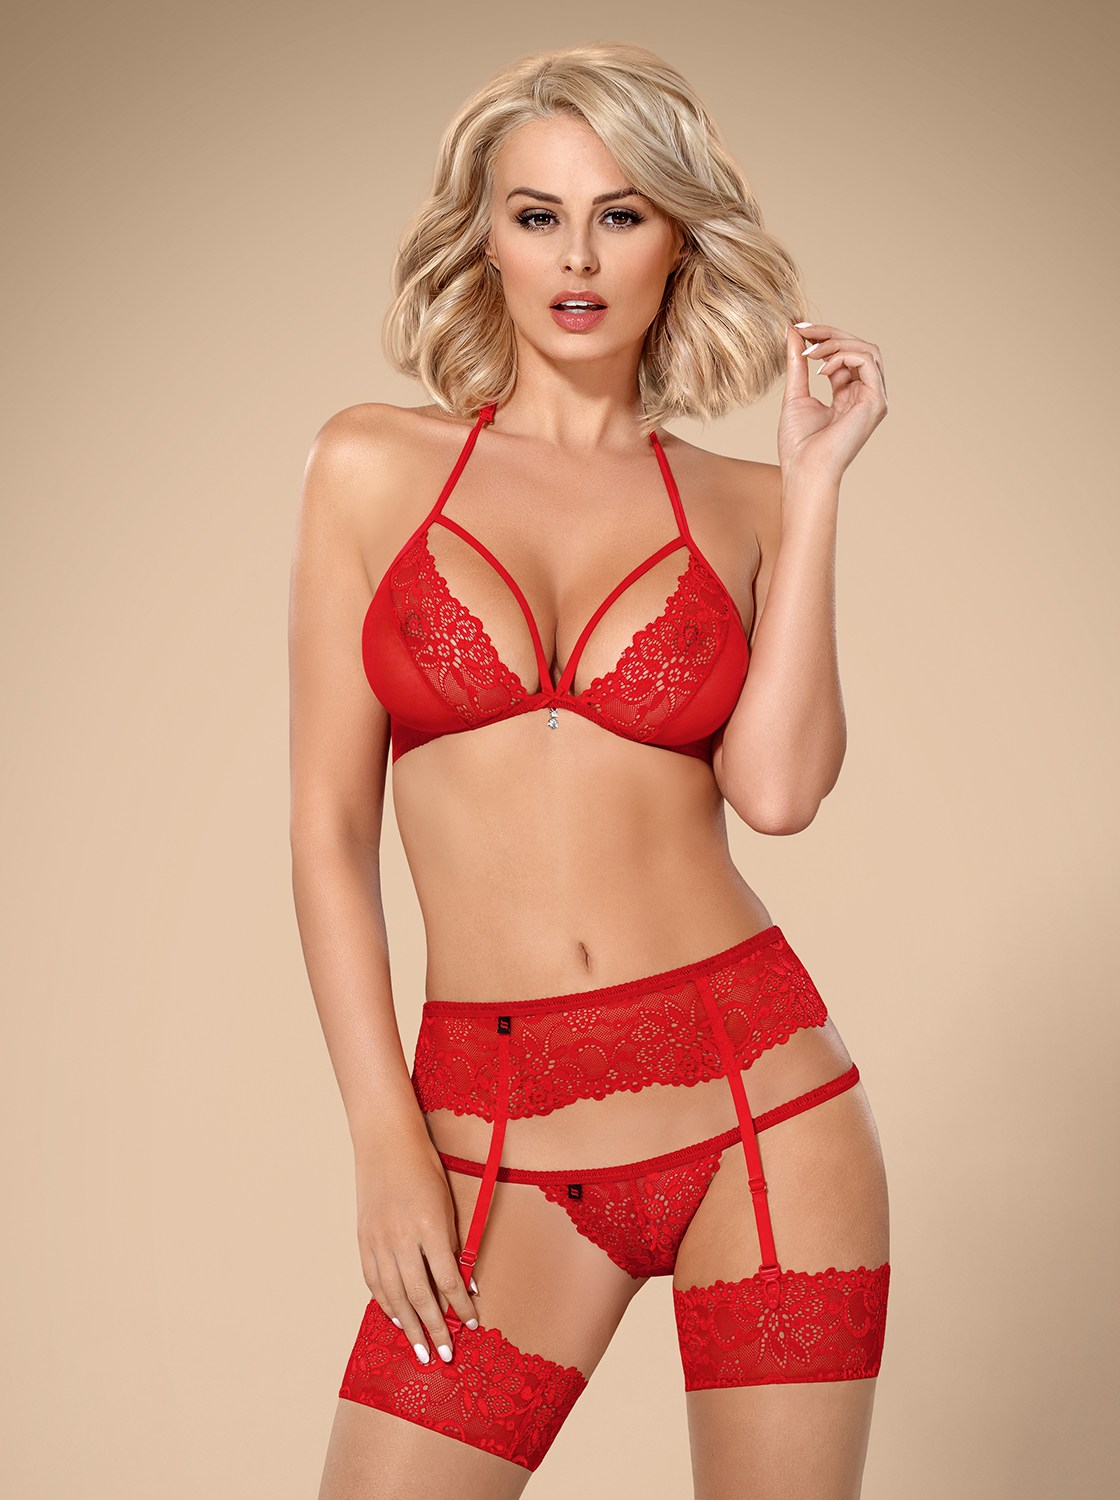 Completino intimo in pizzo rosso 838 Obsessive Lingerie